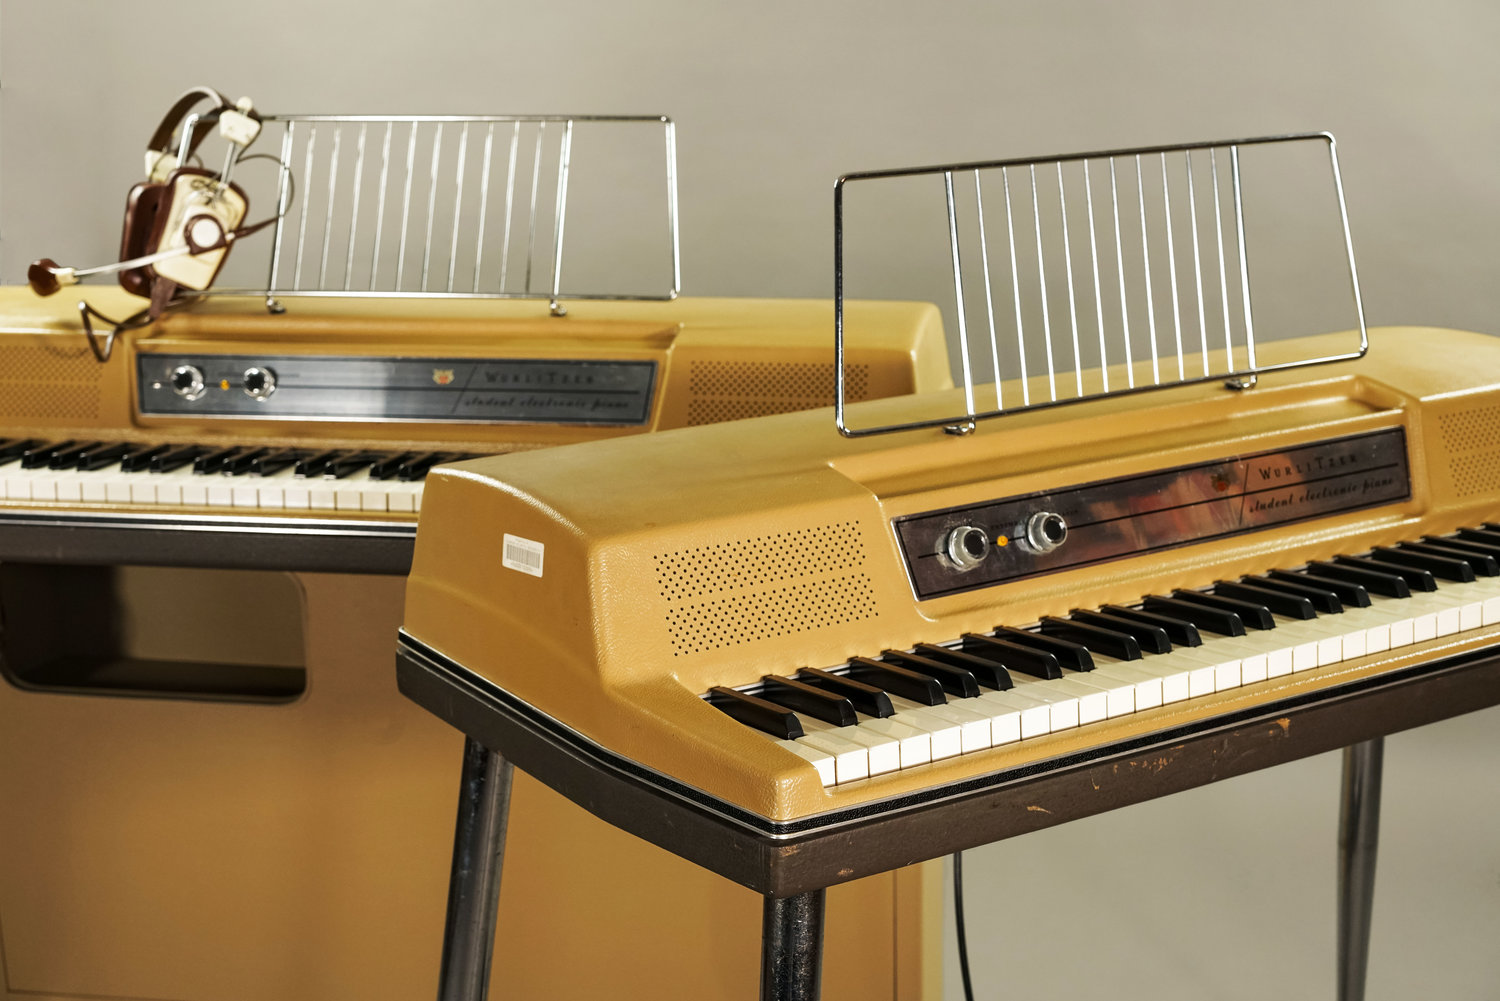 Differences Between a Wurlitzer 200 and 200a